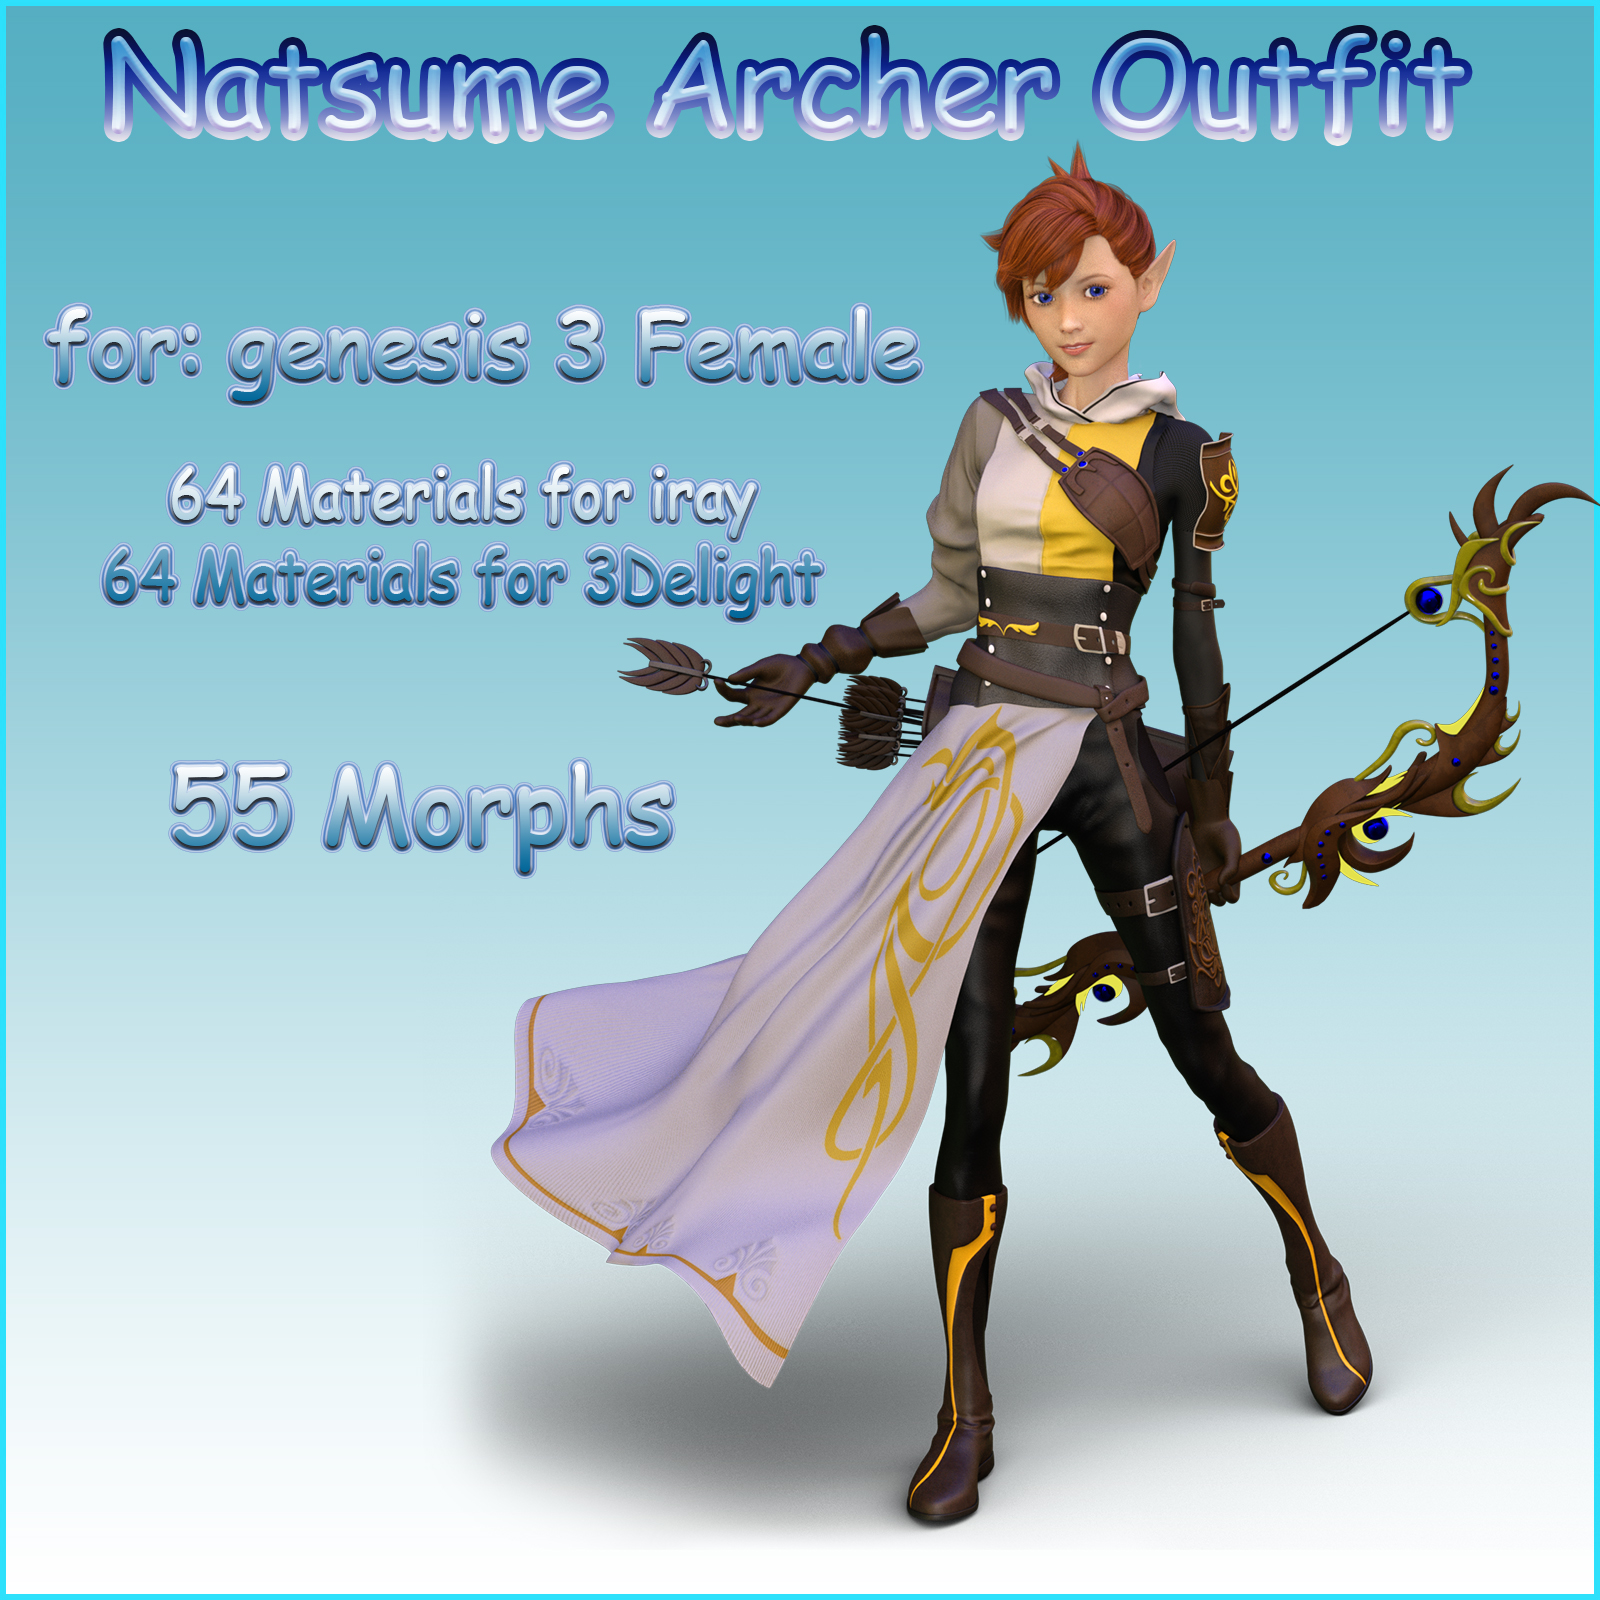 Natsume Archer Outfit for G3F